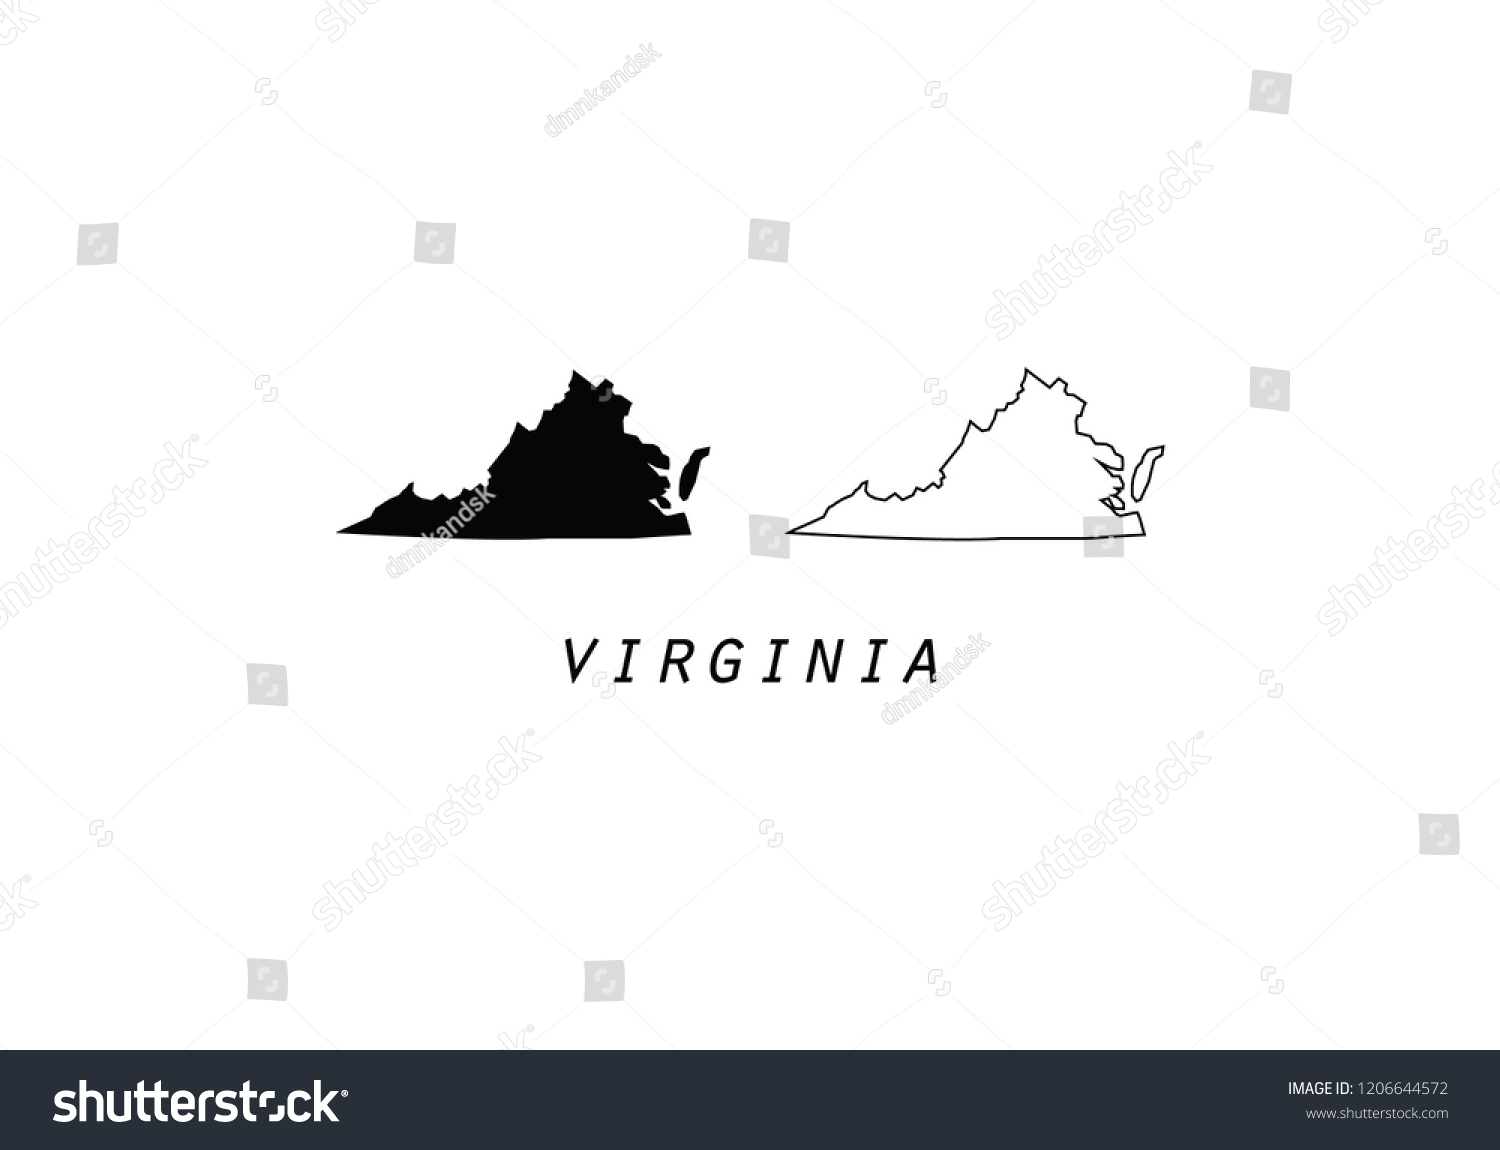 Outline Map Of Virginia.Virginia Outline Map State Shape Usa Stock Vector Royalty Free